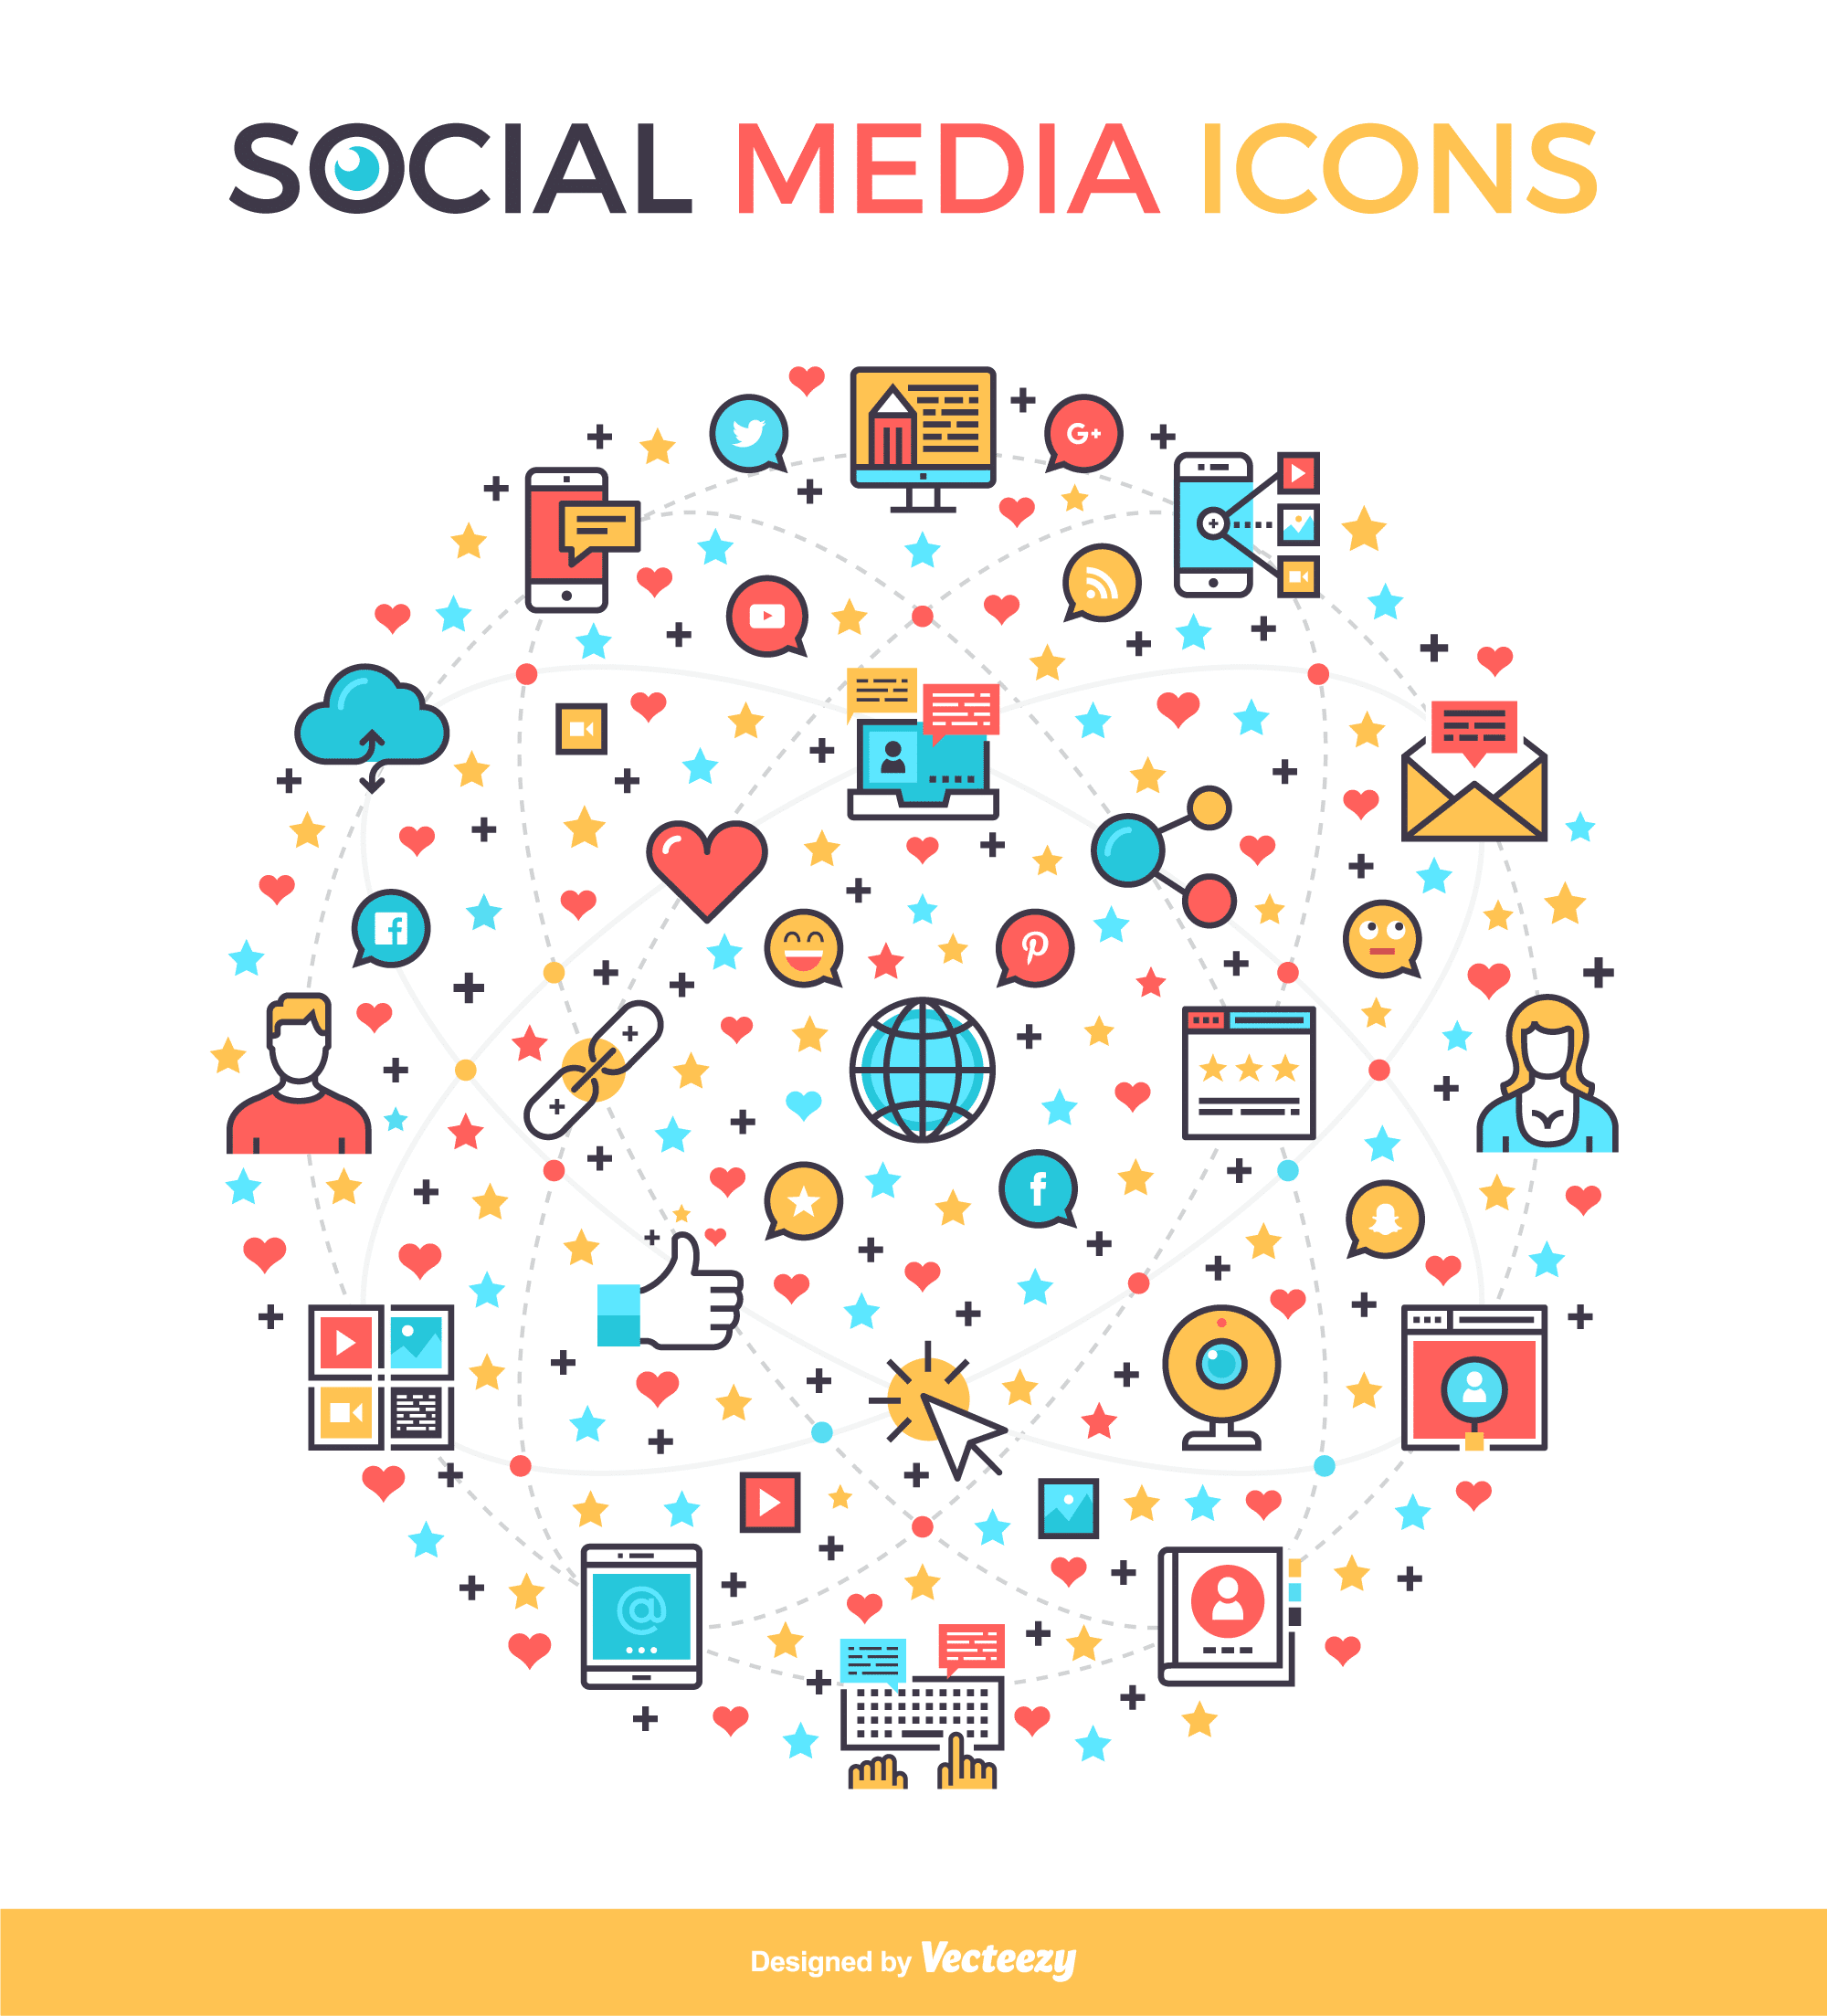 social media icons from vecteezy